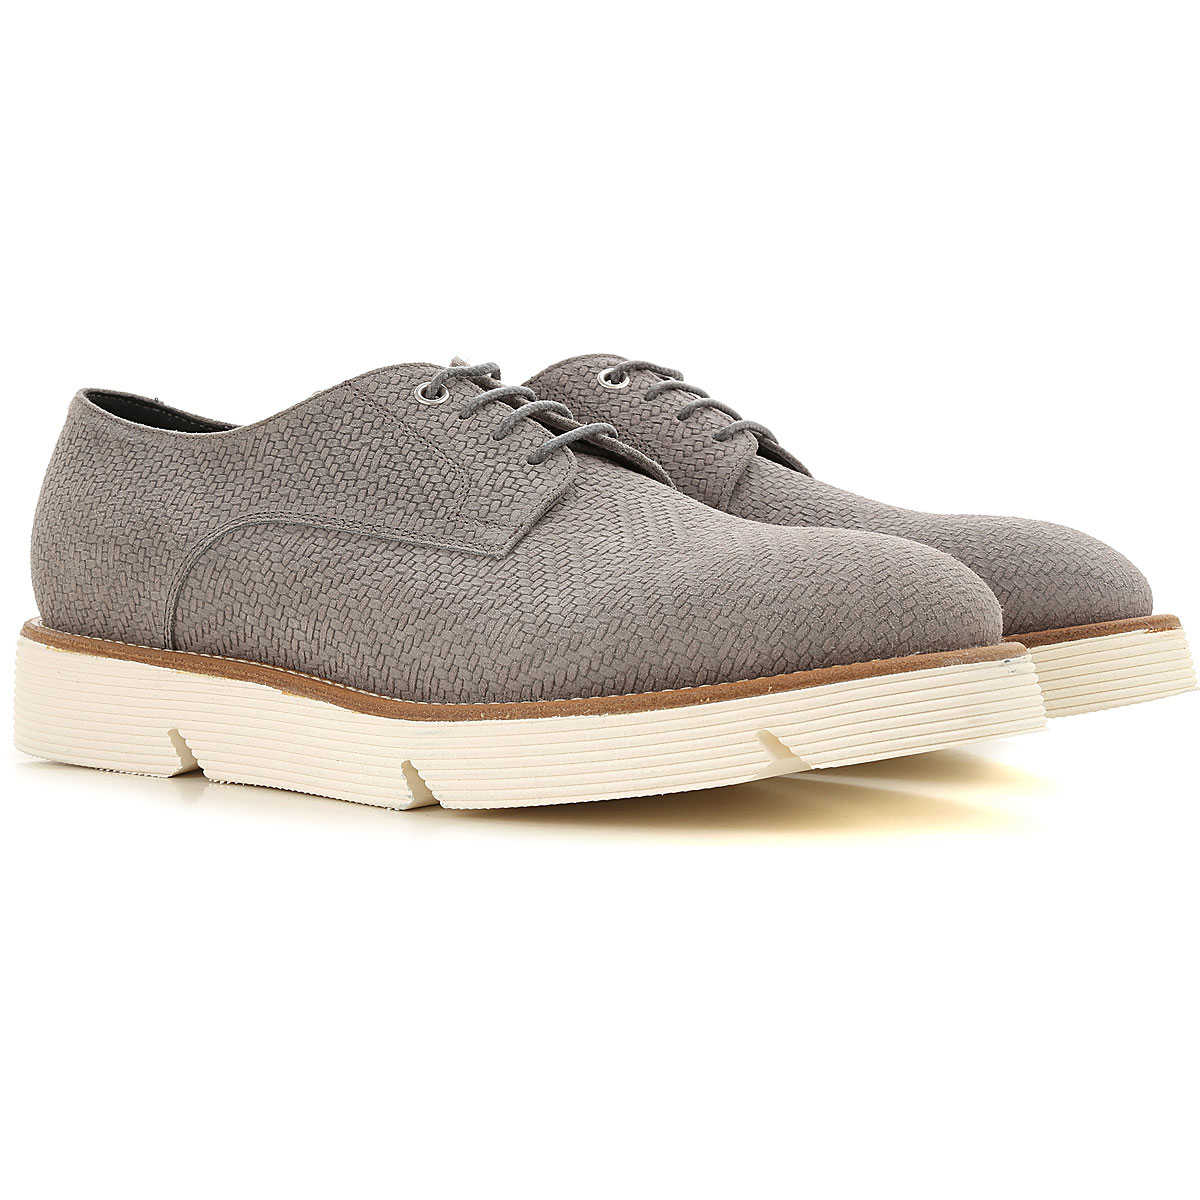 Alberto Guardiani Lace Up Shoes for Men Oxfords